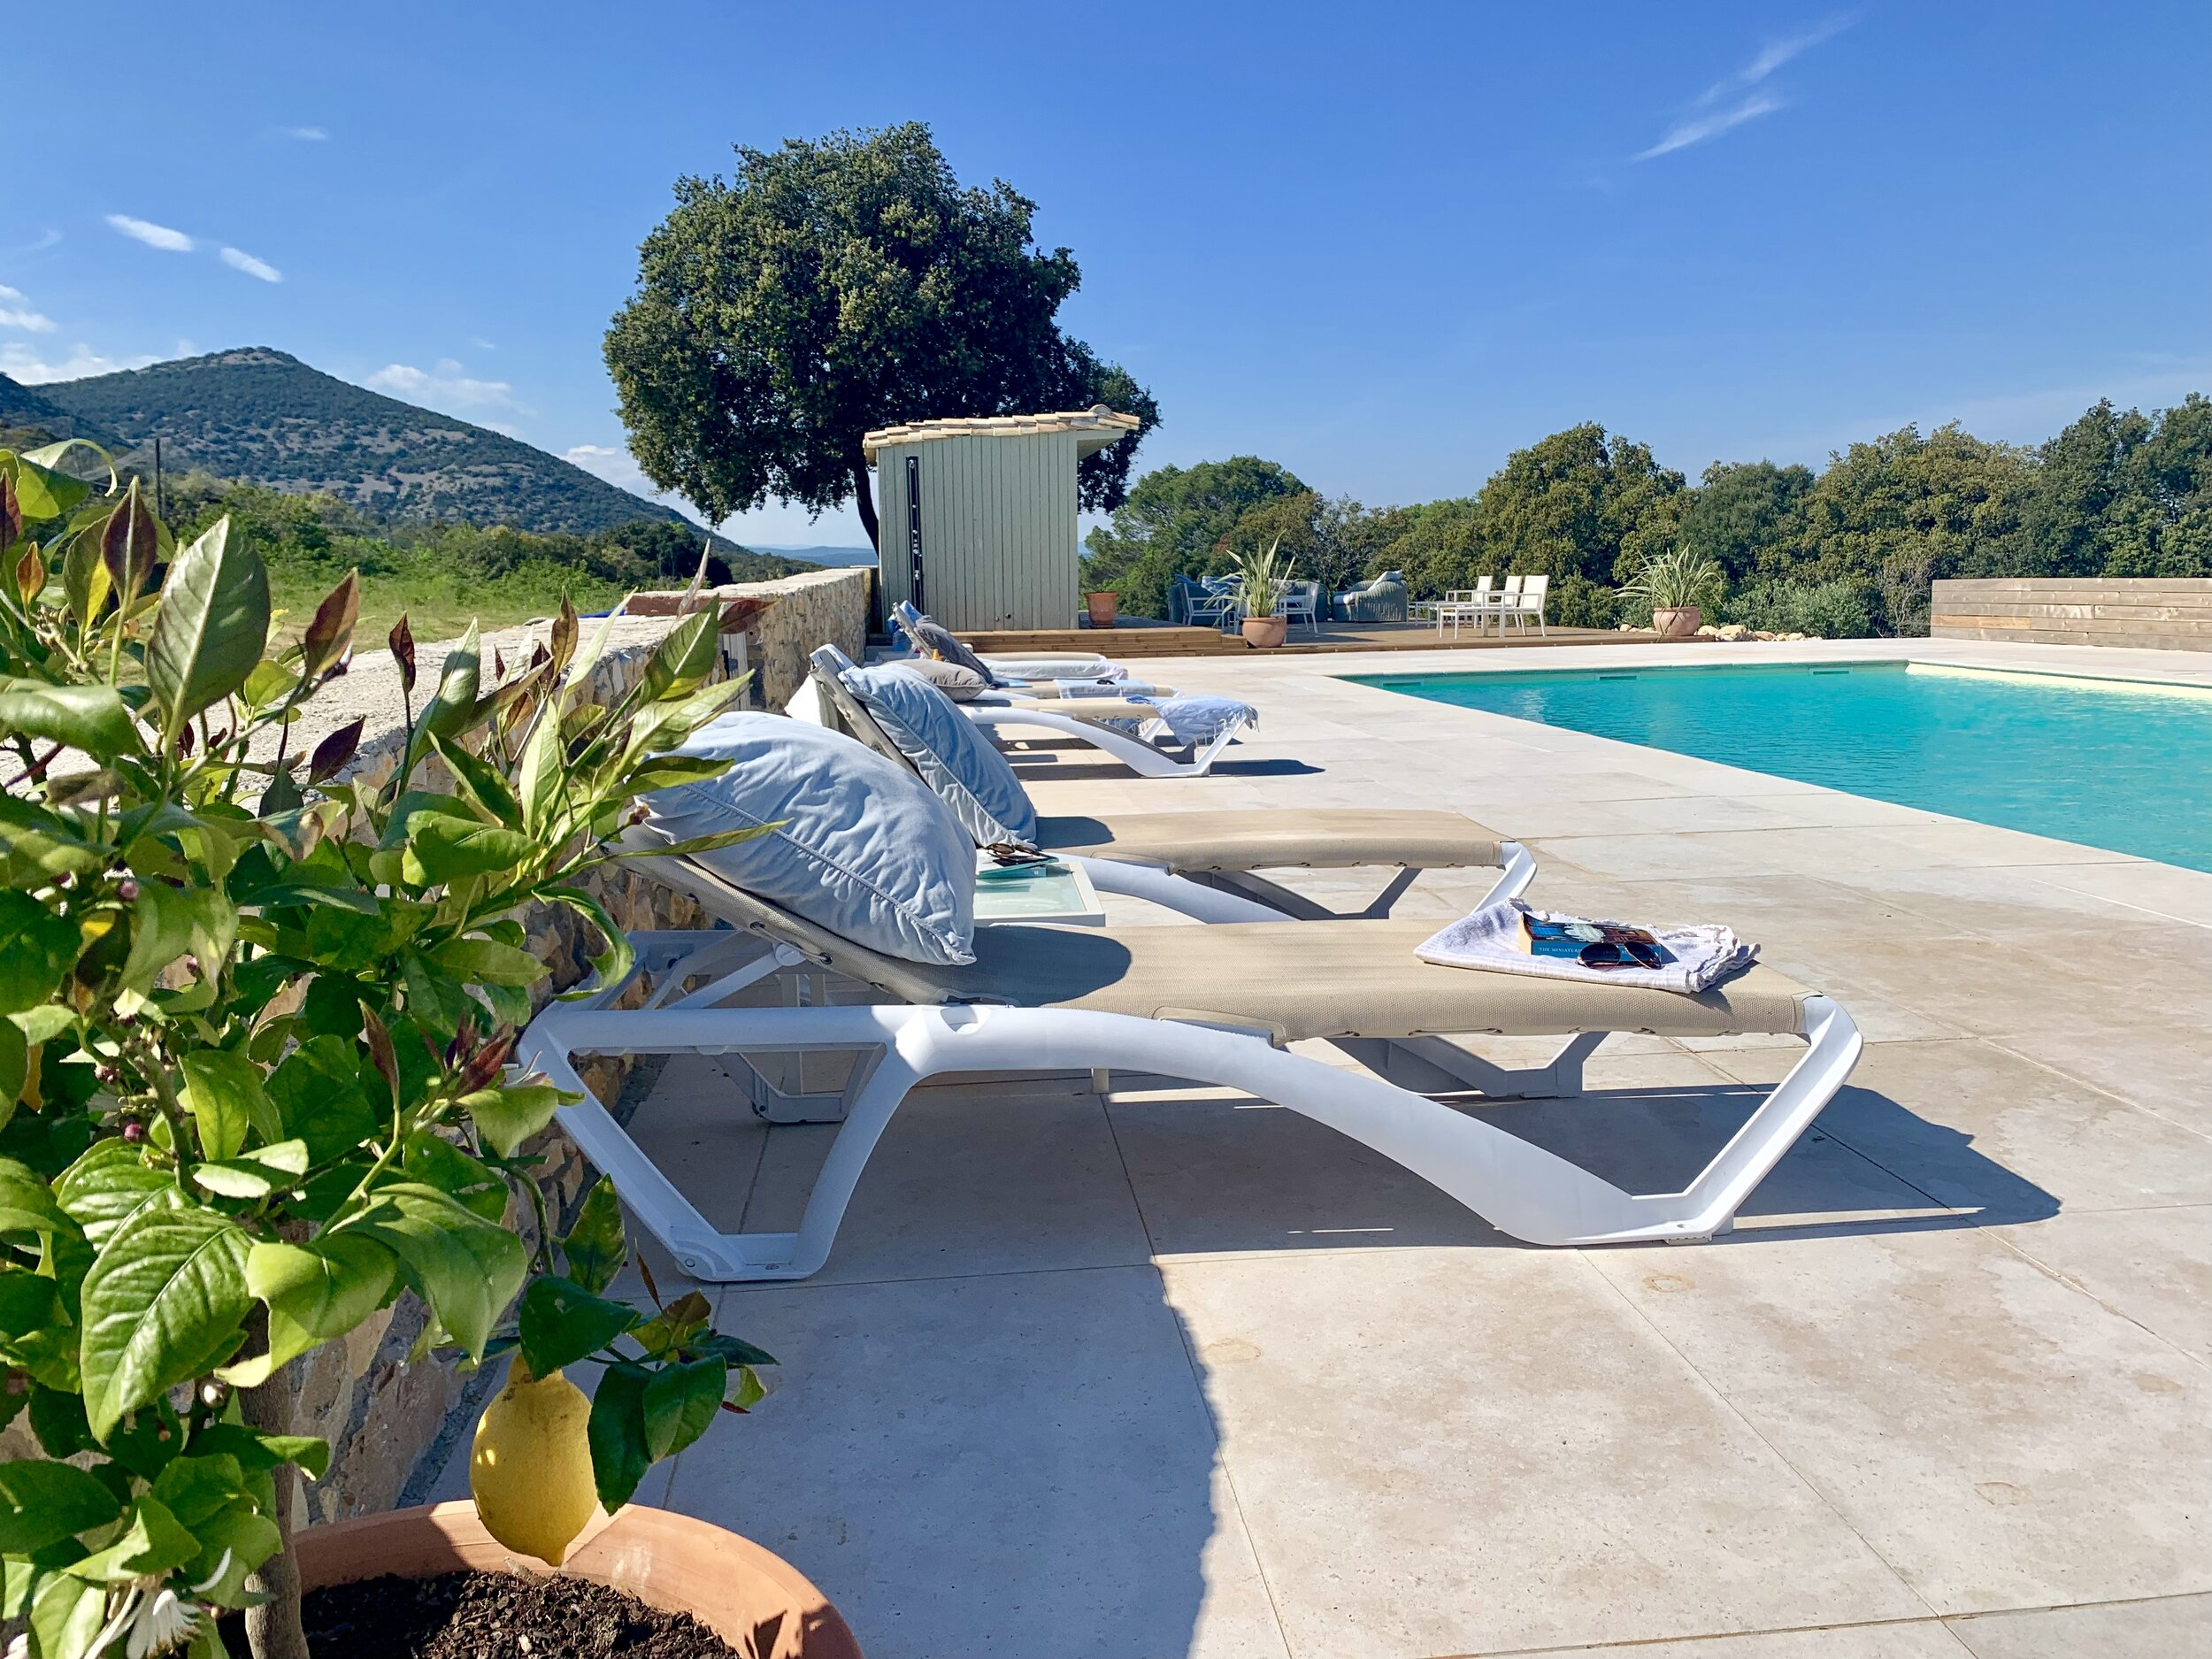 We are very excited to be hosting James Cassidy for his blissful yoga retreat in the South of France in September 2020. This time, we are heading to luxurious La Deveze, about 30 miles from Nimes. La Deveze is set within 97 acres of beautiful meadow and woodland above the market town of Quissac in the Occitanie region. This collection of ancient stone buildings has been transformed into luxurious accommodation ideally suited to hosting a yoga retreat.  James is one of the most popular teachers at East of Eden, and he'll take you through a full week of yoga and meditation with a chance to really get into the full practice, leaving physically and mentally renewed and invigorated. With luxury accommodation, a heated swimming pool and beautiful French countryside to explore on foot, bike or by car, this promises to be the perfect way to relax and escape hectic London life. There is an indoor shala with heated floor, an outoor yoga deck and numerous woodland clearings with stunning views for outdoor classes and meditations.  Food is such an important part of a retreat, and we are really happy with what is on offer at La Deveze. Many of the ingredients used in their cooking are from their own vegetable and herb gardens and in 2020 they will also be producing their own olive oil and wine.  •Breakfast will consist of fruit, breads, yogurt, homemade preserves,(honey from our own hives), tea, coffee, juice and some mornings fresh eggs from our hens.  •Lunch will be two courses.  •Dinner will be three courses, all vegetarian, with the option to purchase wine.  •Fruit, tea, coffee and mineral water are available throughout the day.  Spaces are limited to 15 on this retreat, so please do act fast to secure your booking.  To book, email info@resetretreats.co.uk quoting SEPT 2020 RETREAT in the subject line.